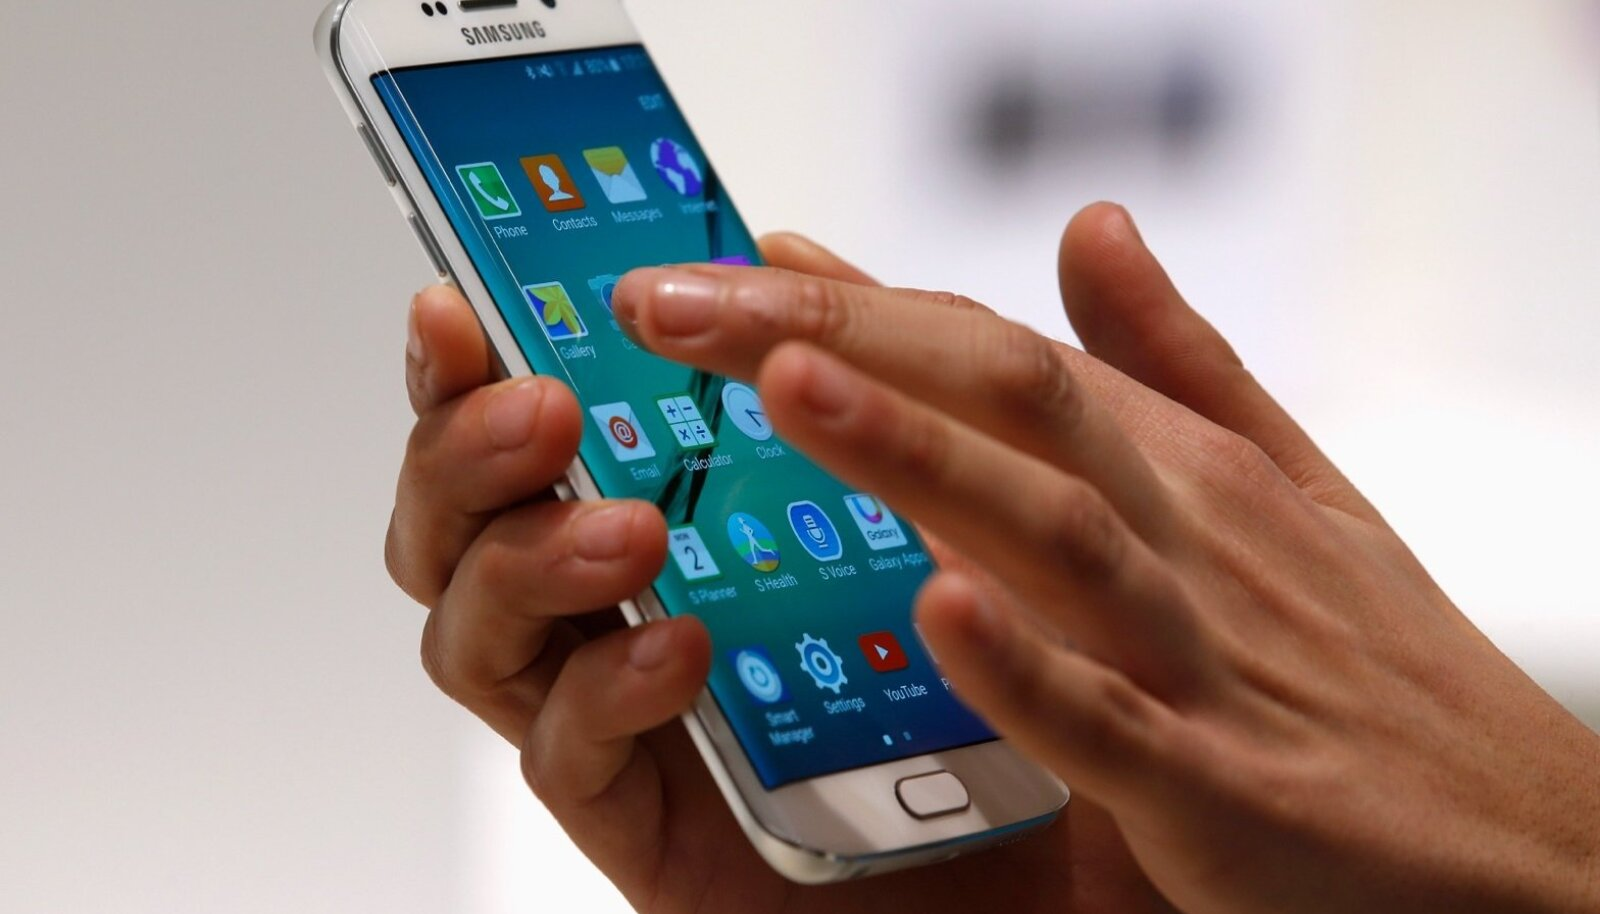 A hostess displays the new Samsung Galaxy S6 Edge smartphone during the Mobile World Congress in Barcelona